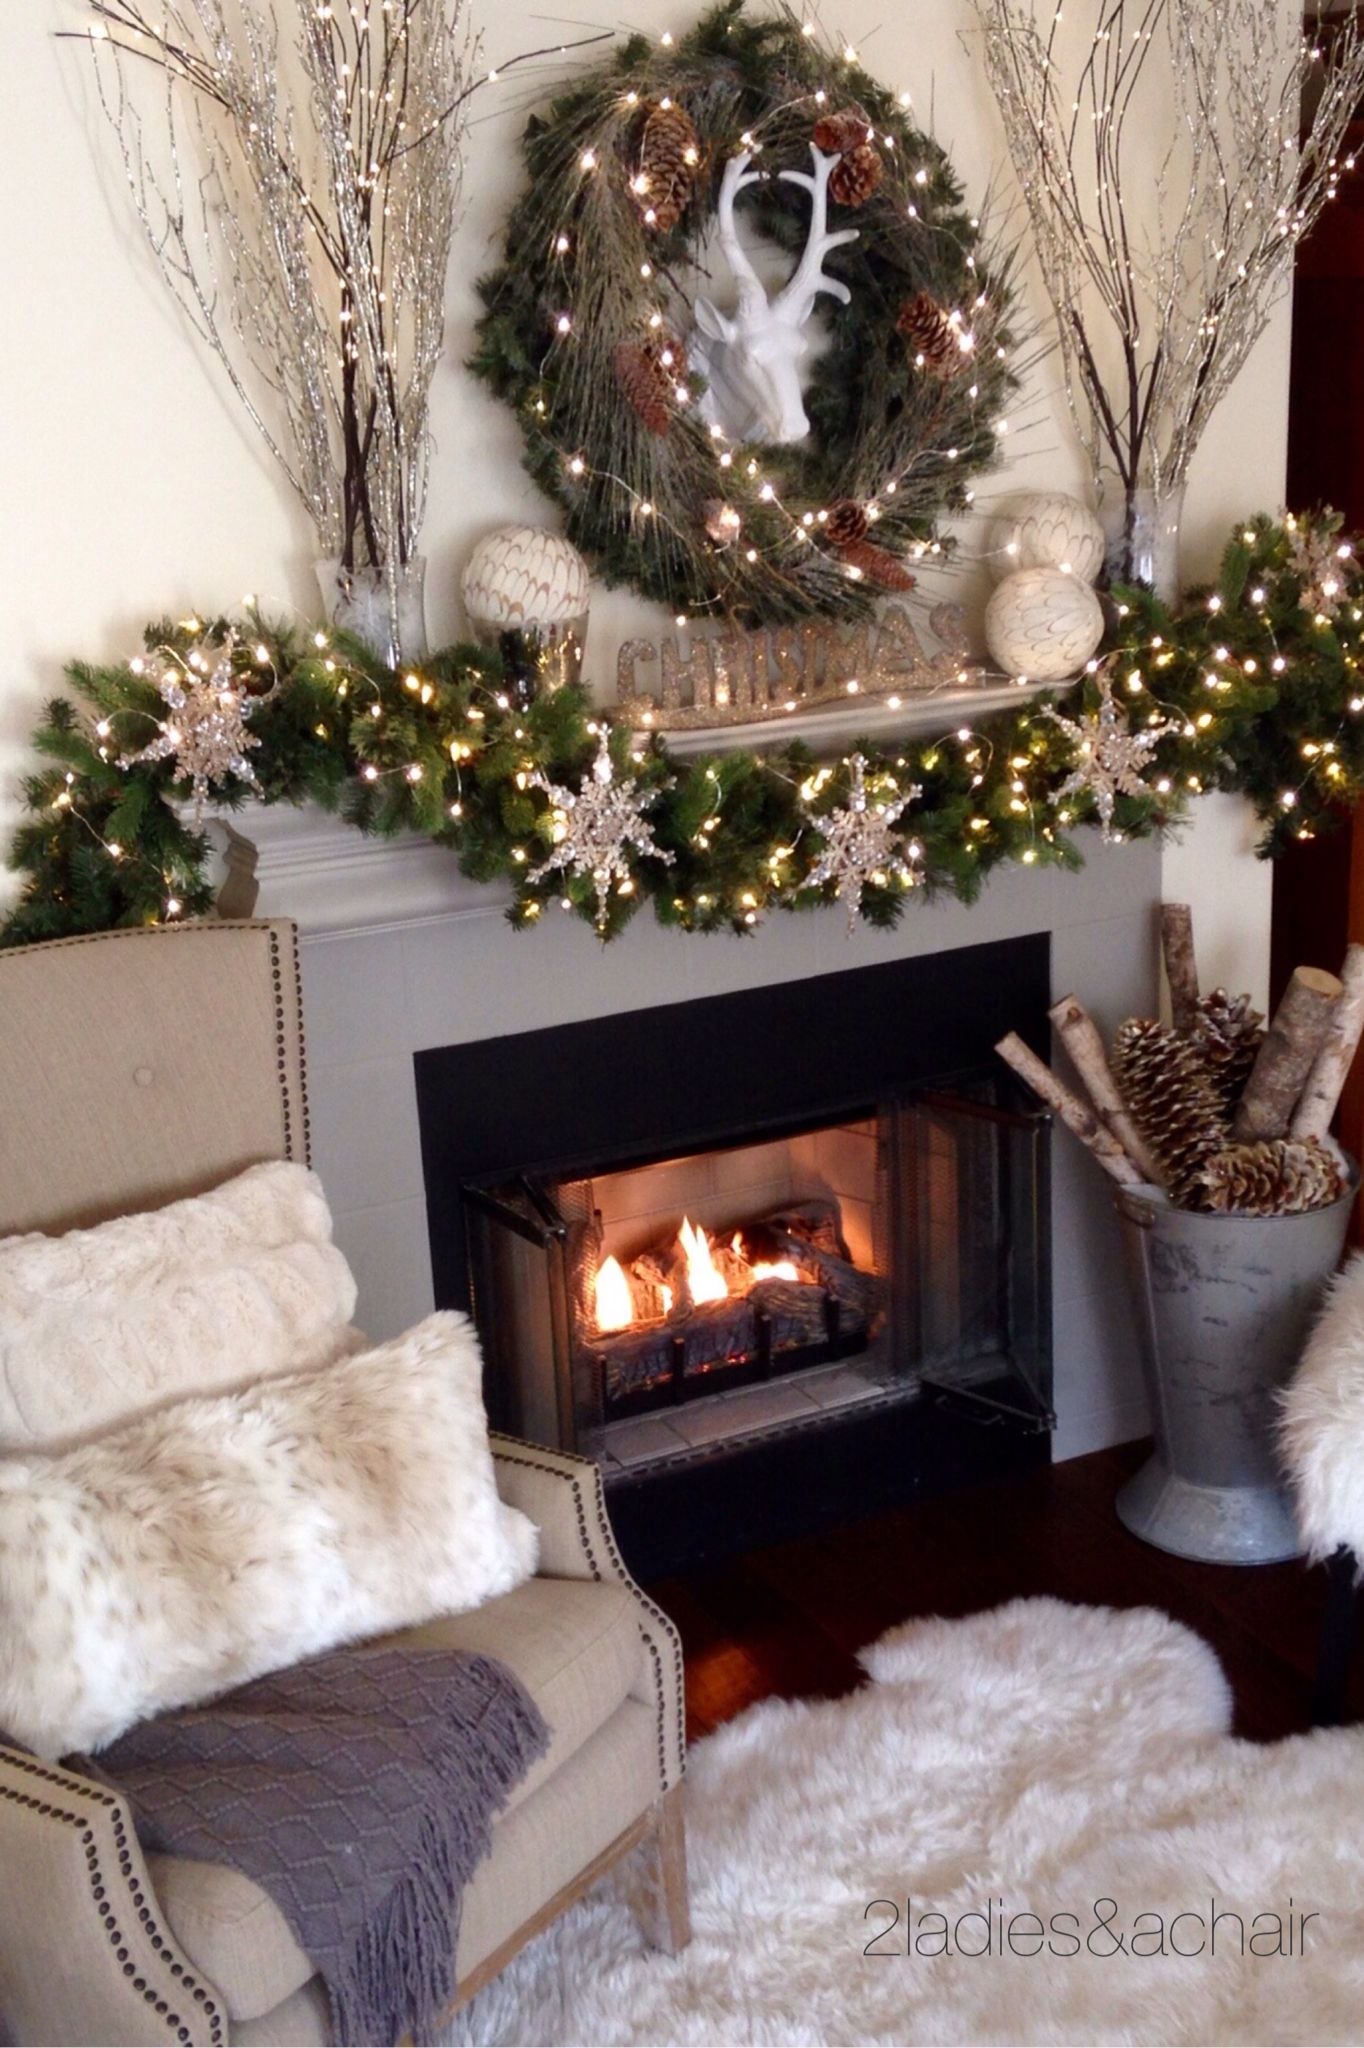 Lovely We Love Shopping At HomeGoods And Finding Just The Right Decor For Our  Mantel. This Deer Head And Silver Branches Were Just The Look We Wanted  Above The ...